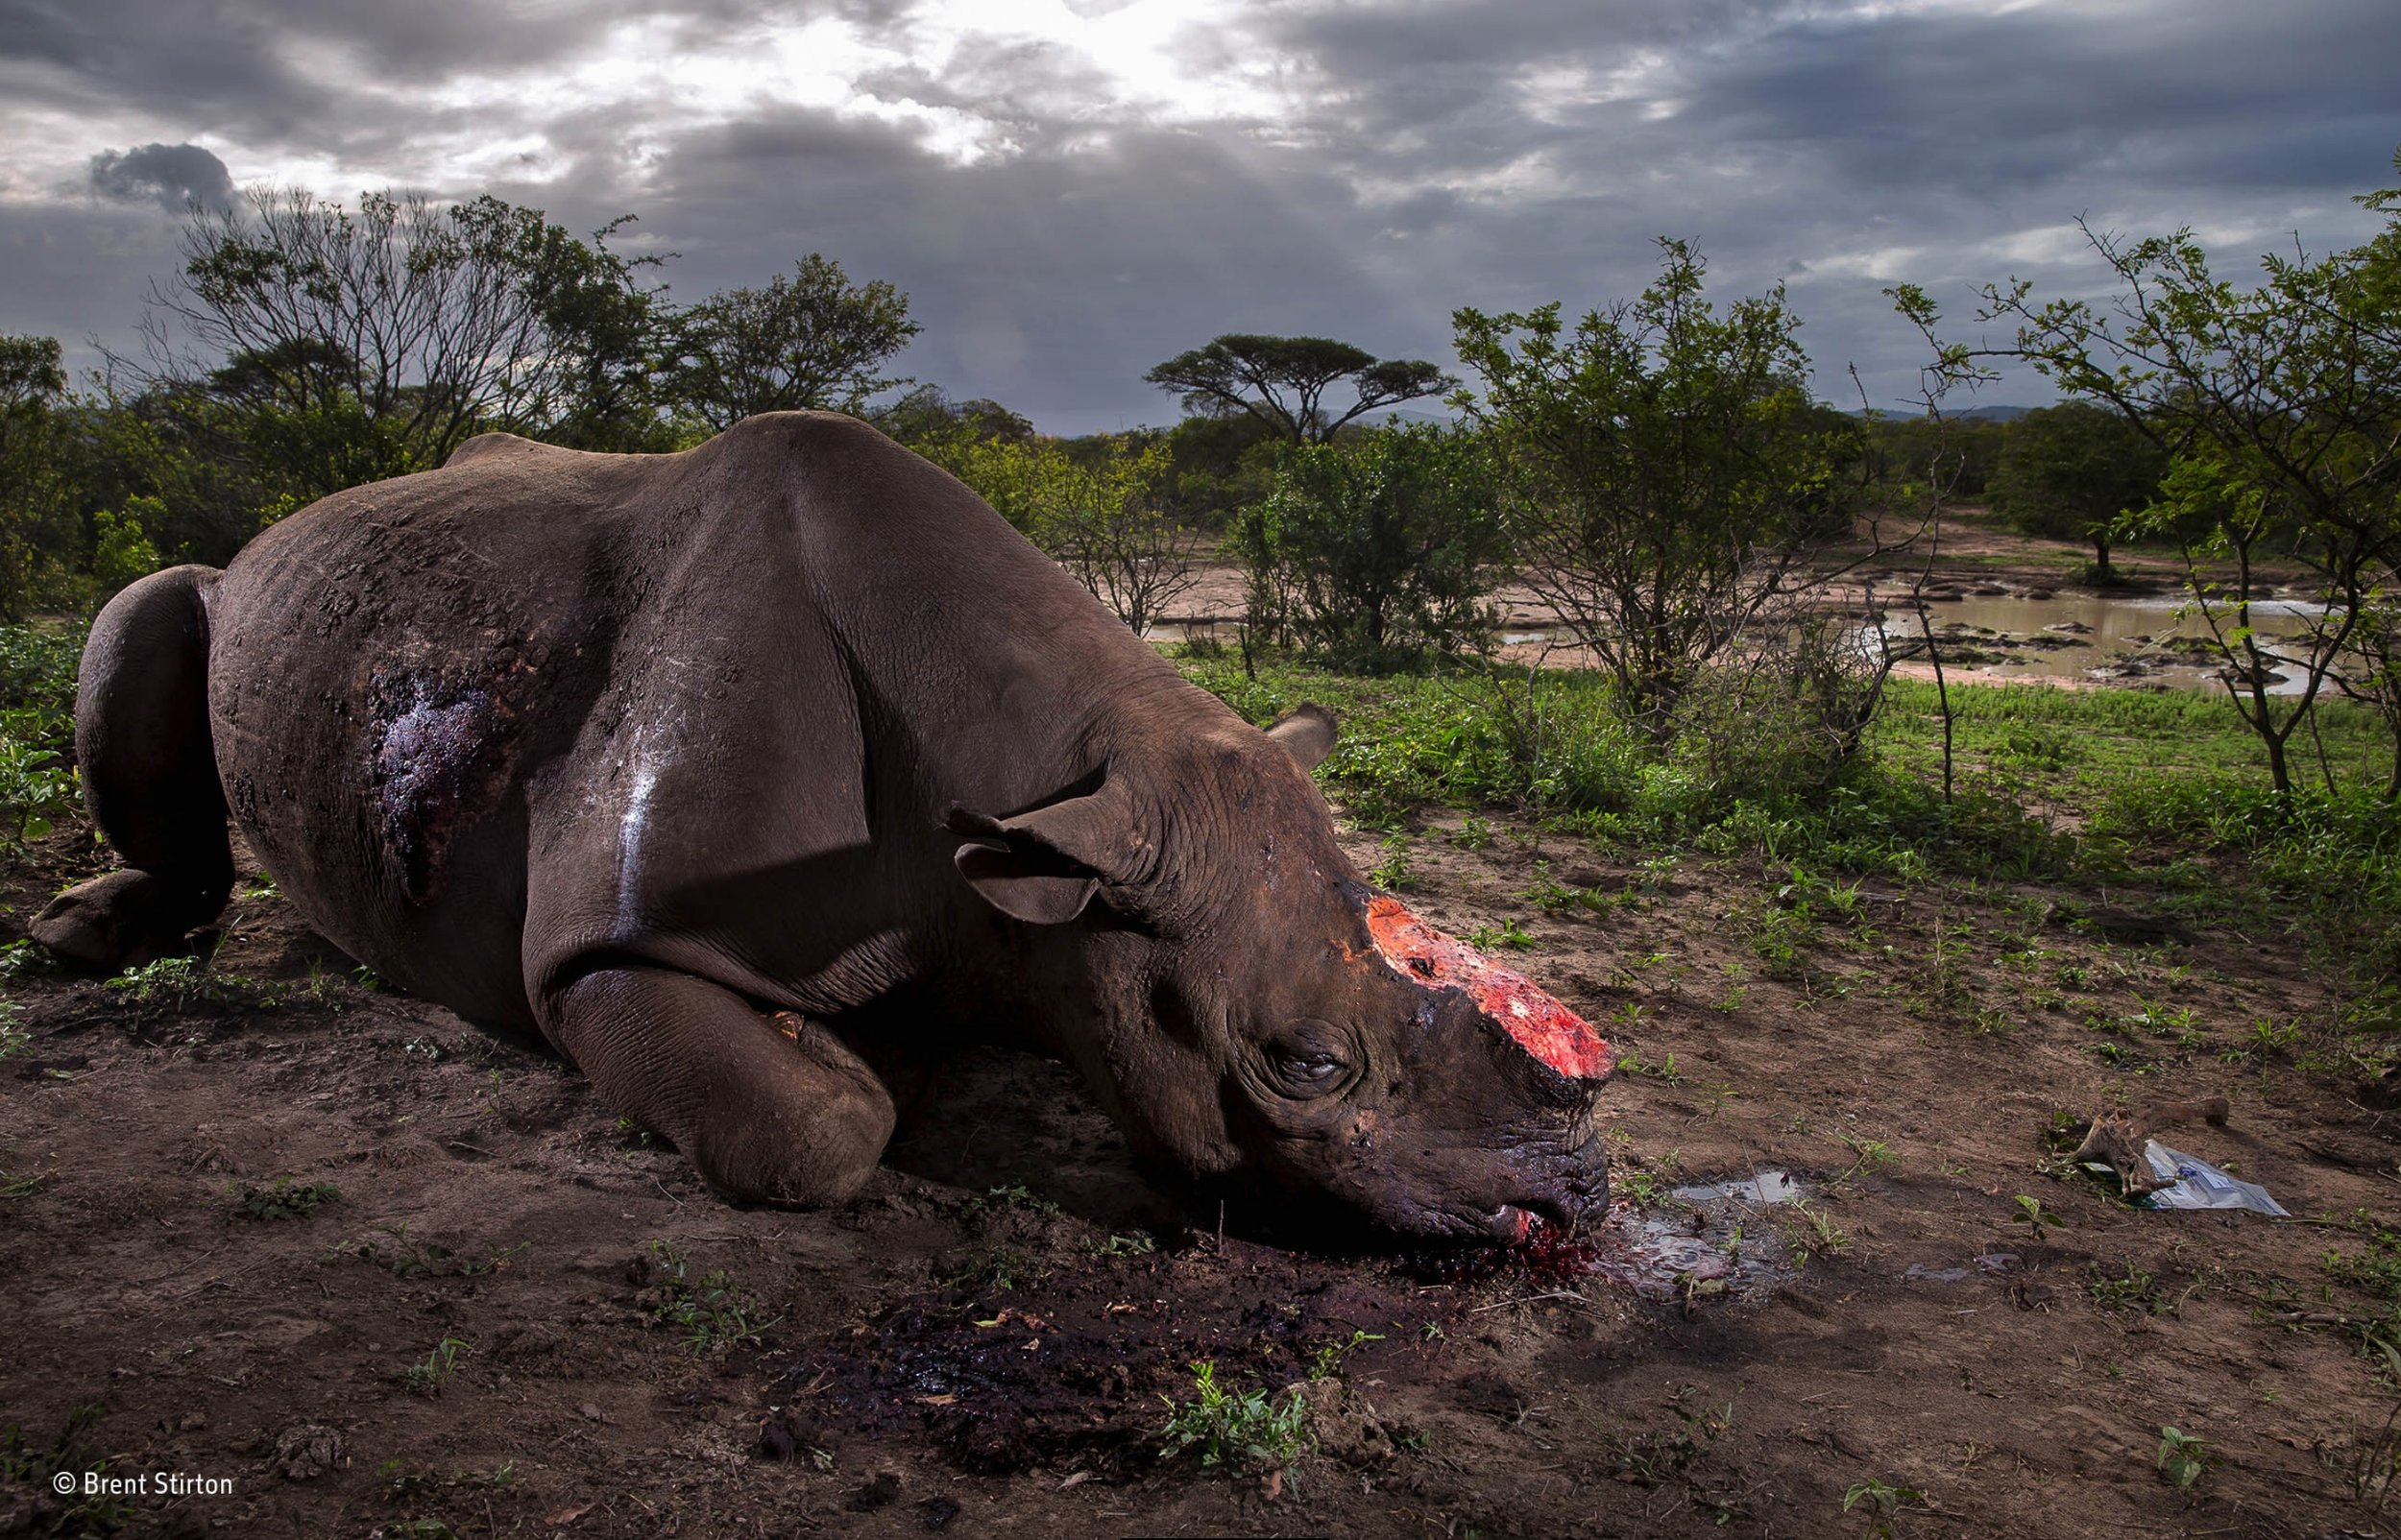 ©Brent Stirton/WPOTY53/Getty Images